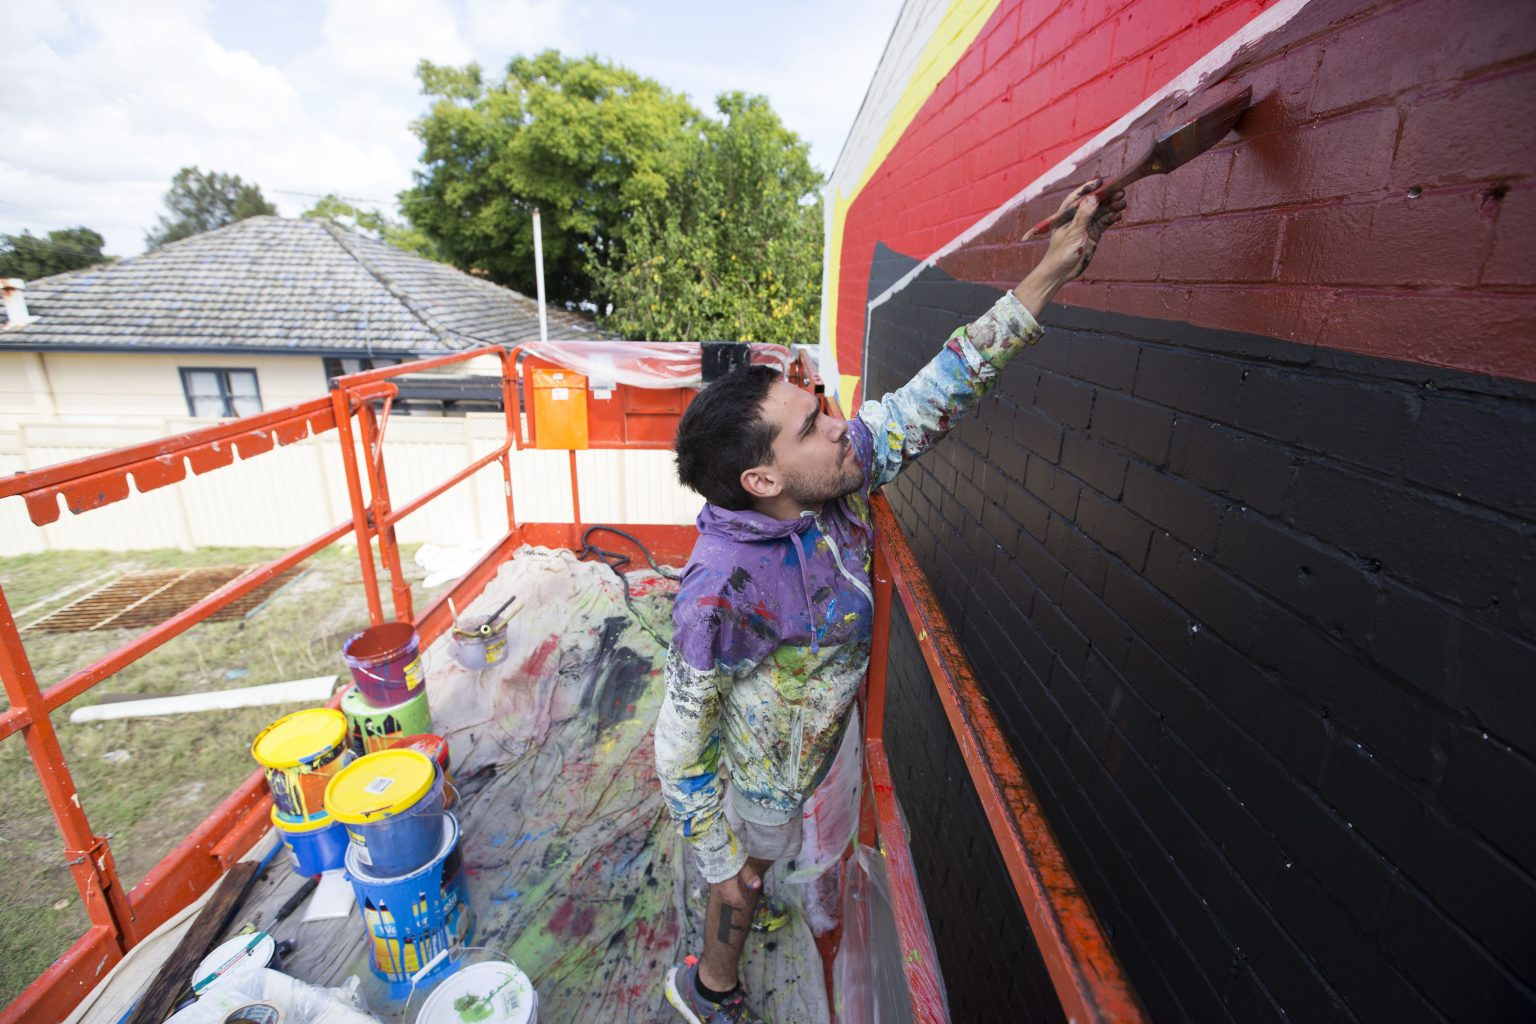 Wide angle profile shot of artist Elian Chali standing on scaffolding painting a mural in brown, black, yellow and red.